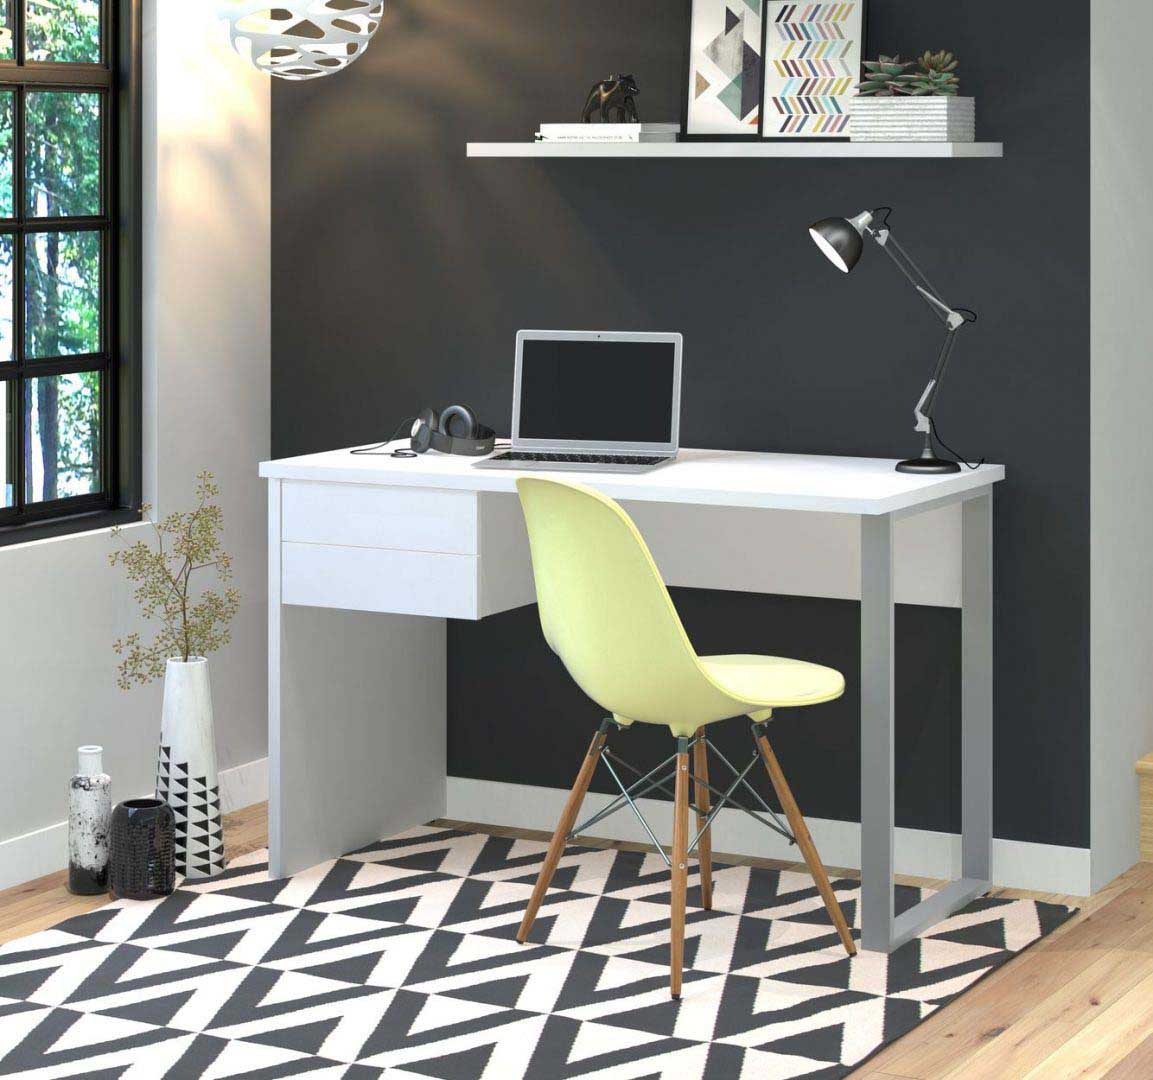 4 Simple Ways to Liven up your Workspace